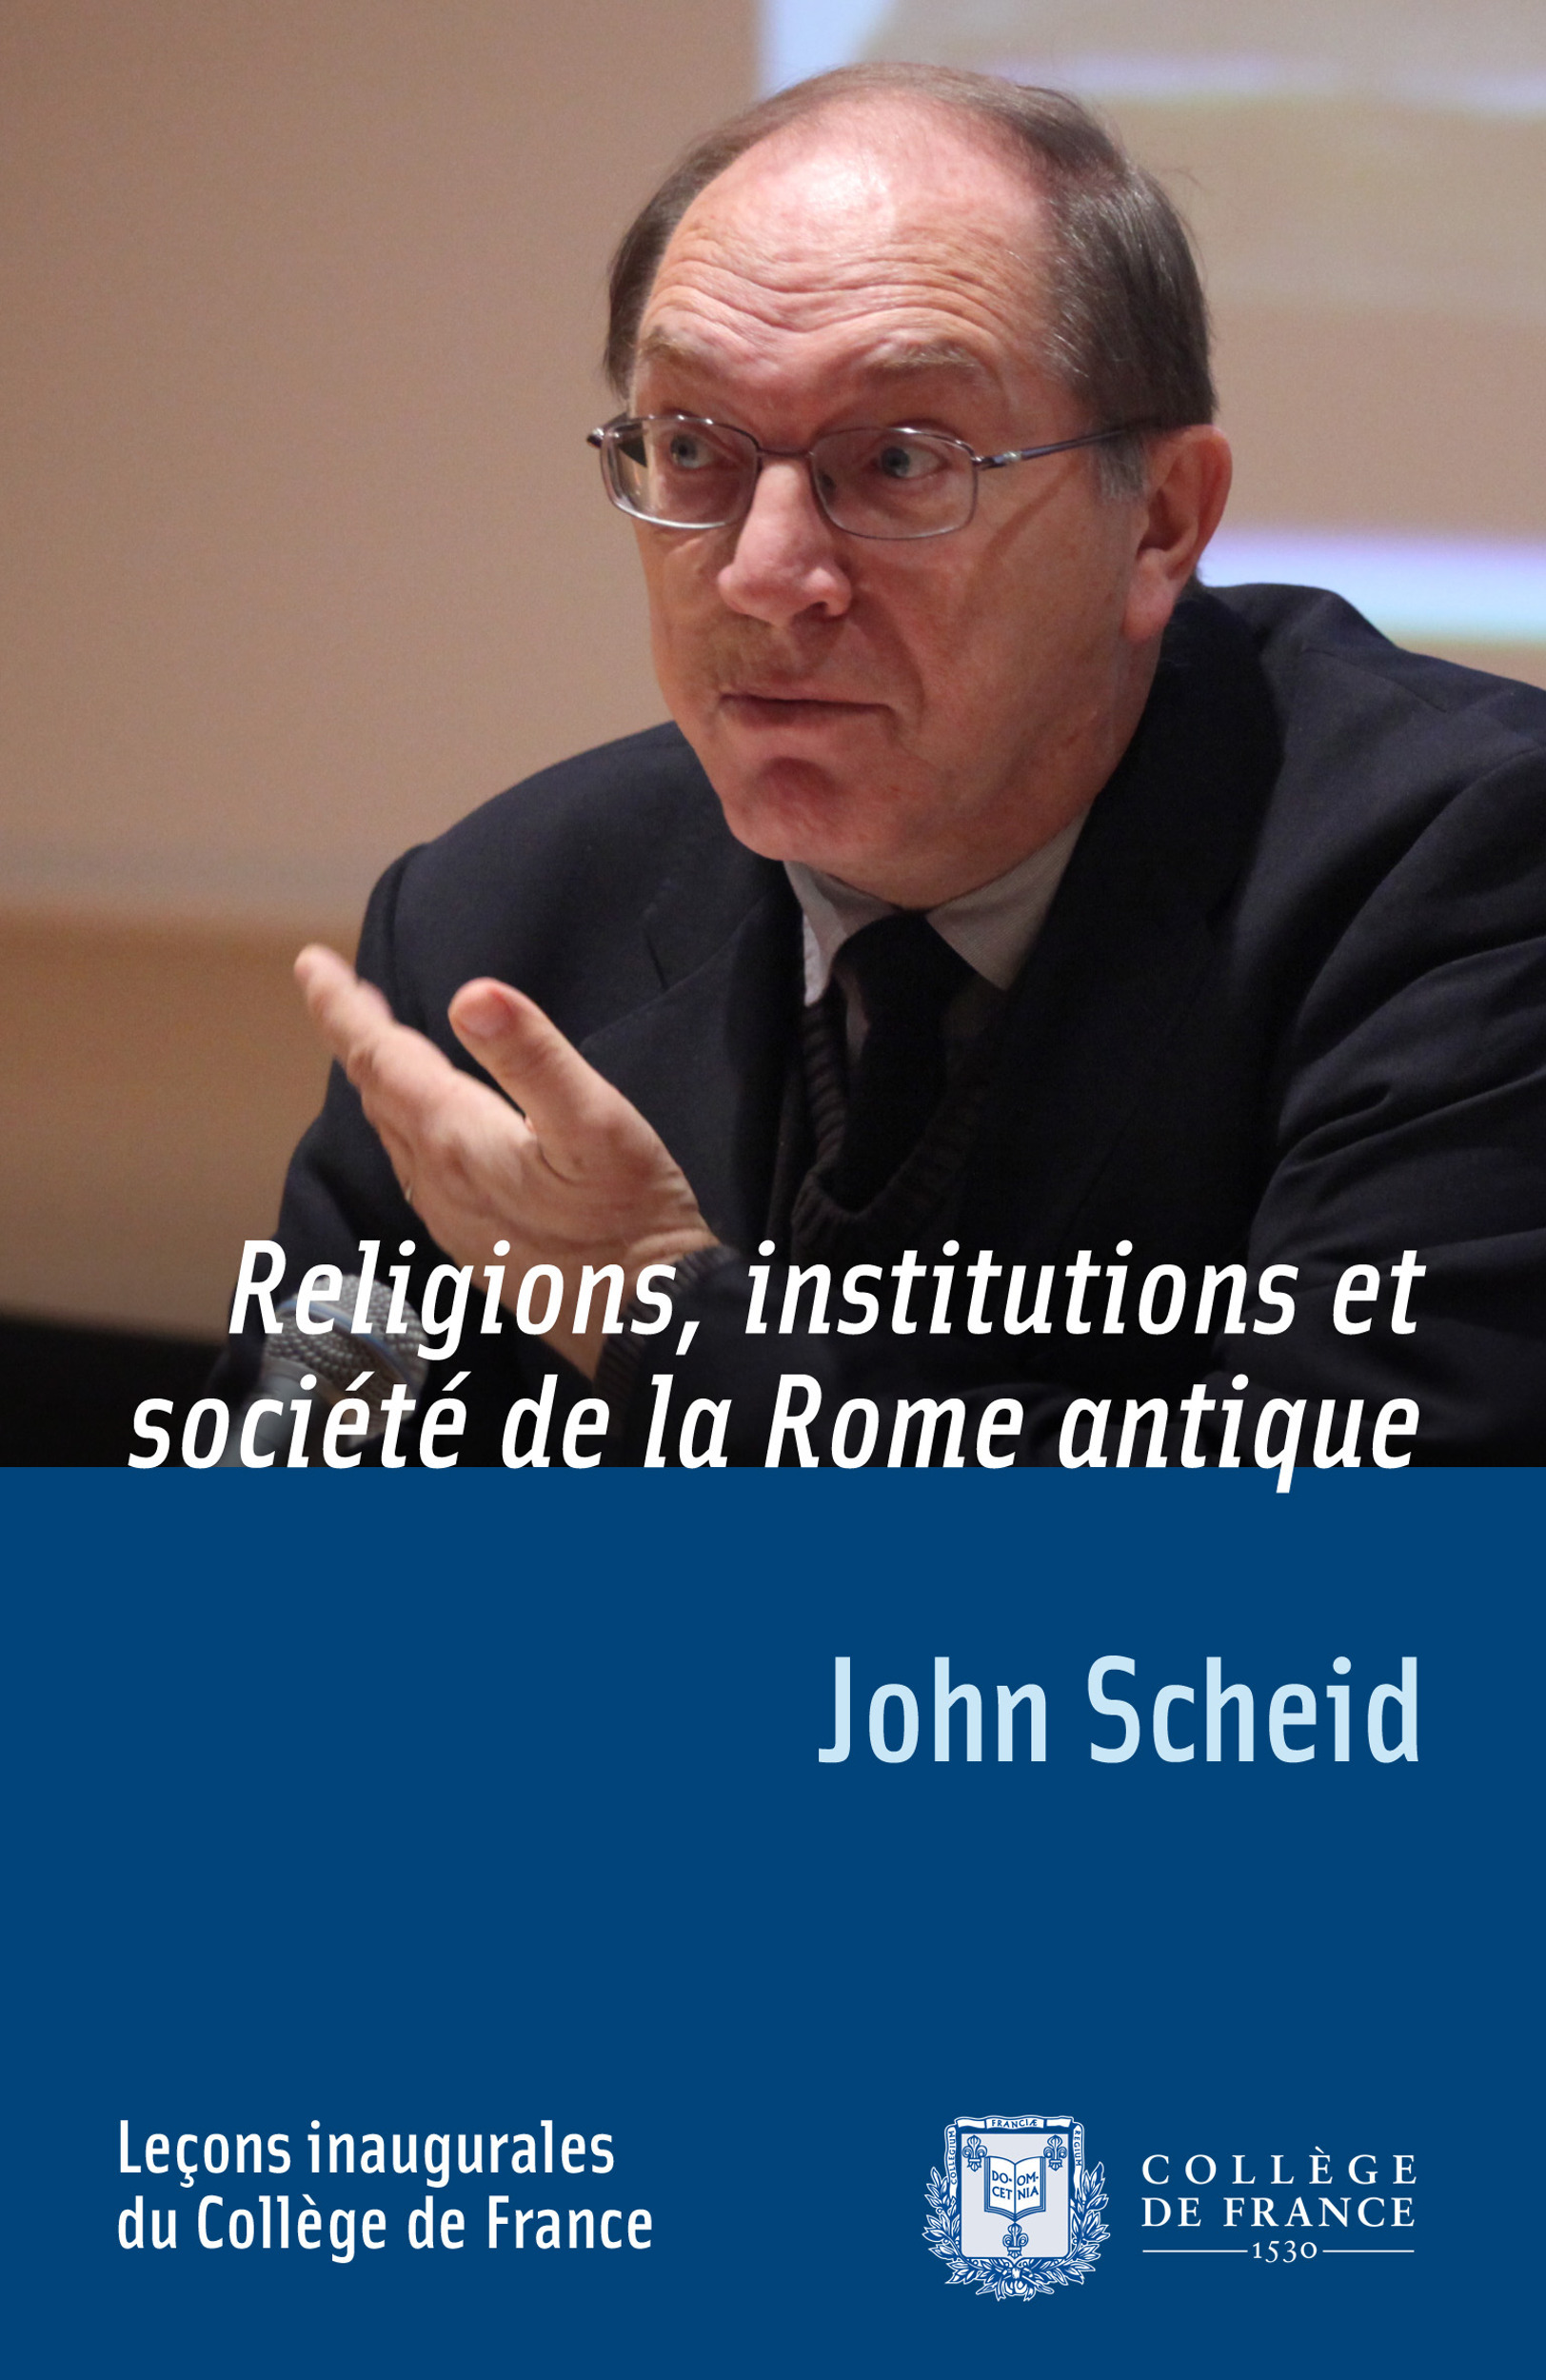 Religion, institutions et societe de la rome antique - lecons inaugurales du college de france